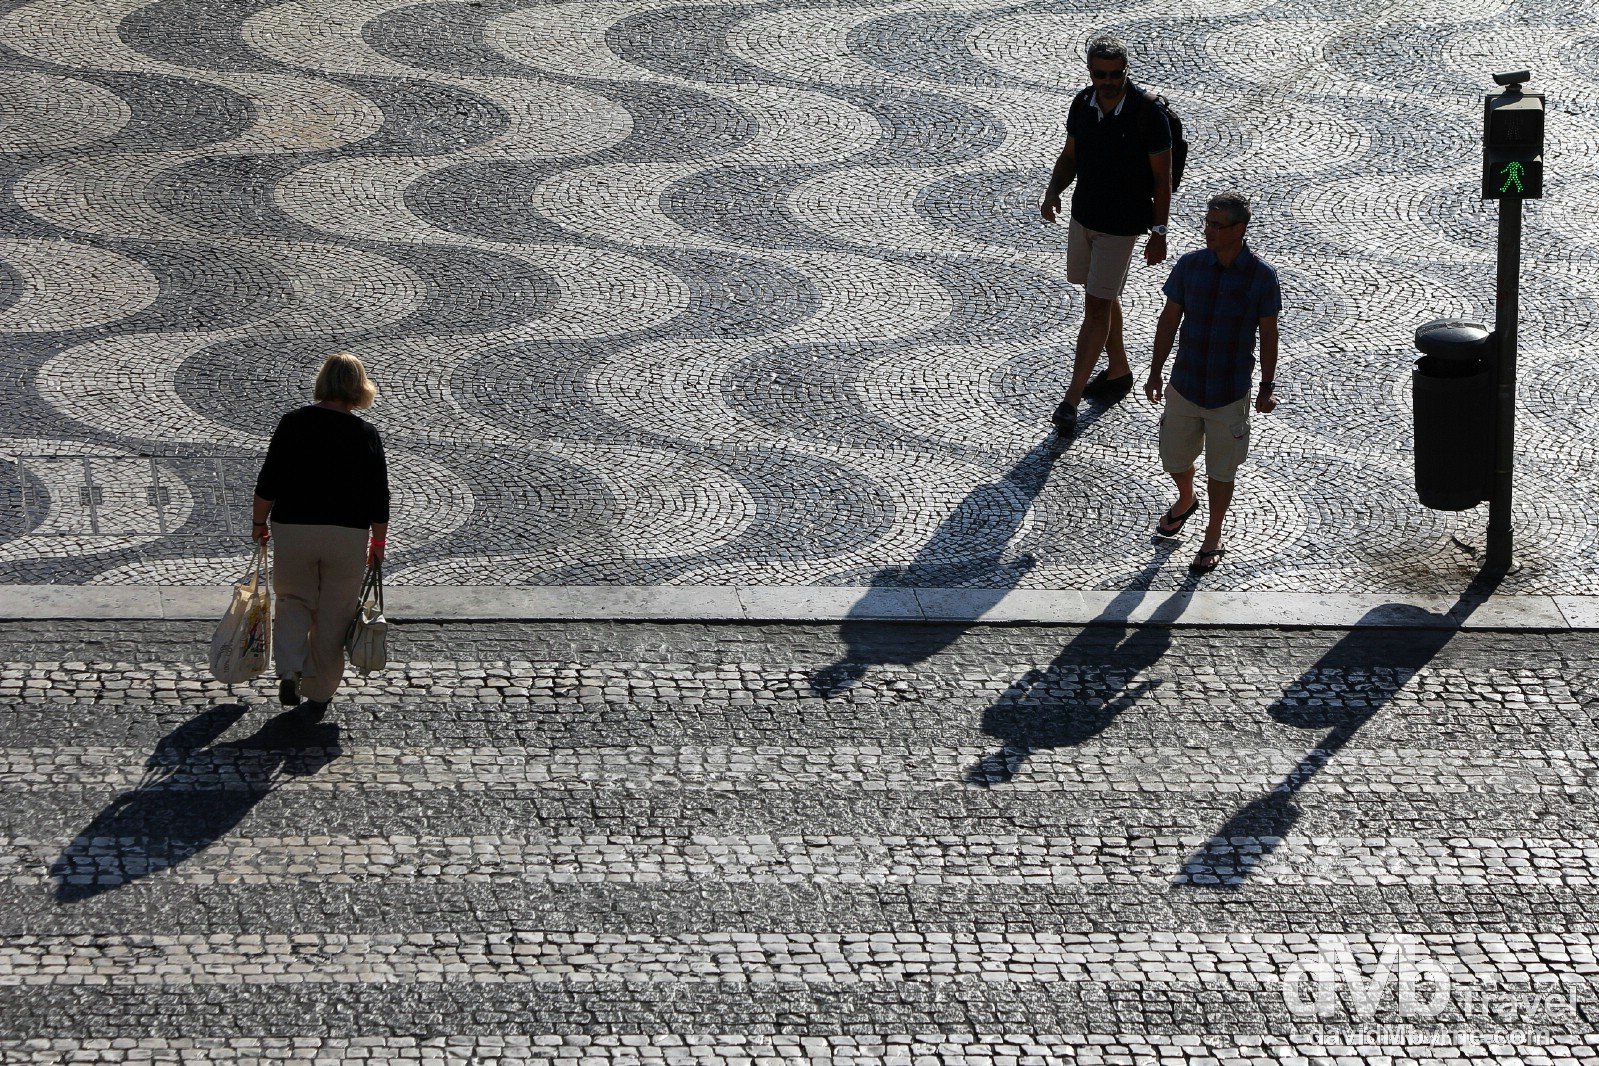 Early morning shadows crossing Praça de D. Pedro IV (Rossio Square), Lisbon, Portugal. August 25th 2013.